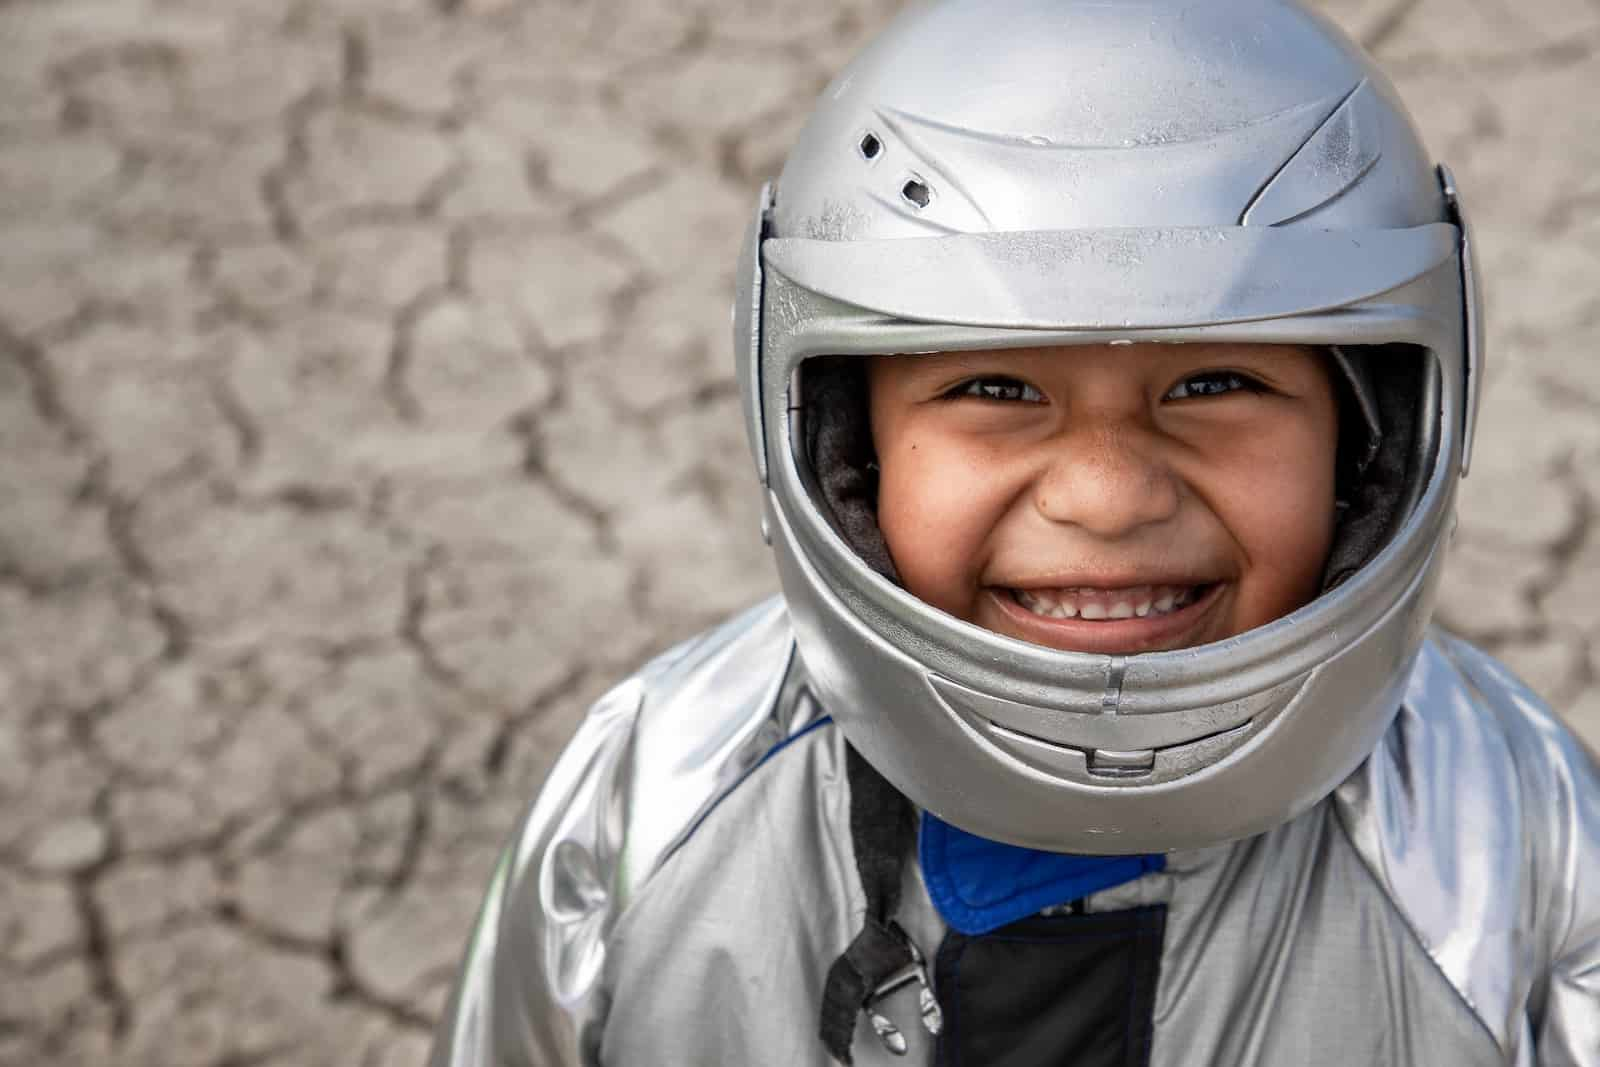 A boy wearing a silver helmet and silver astronaut suit smiles up at the camera. He stands in front of dry, parched ground.